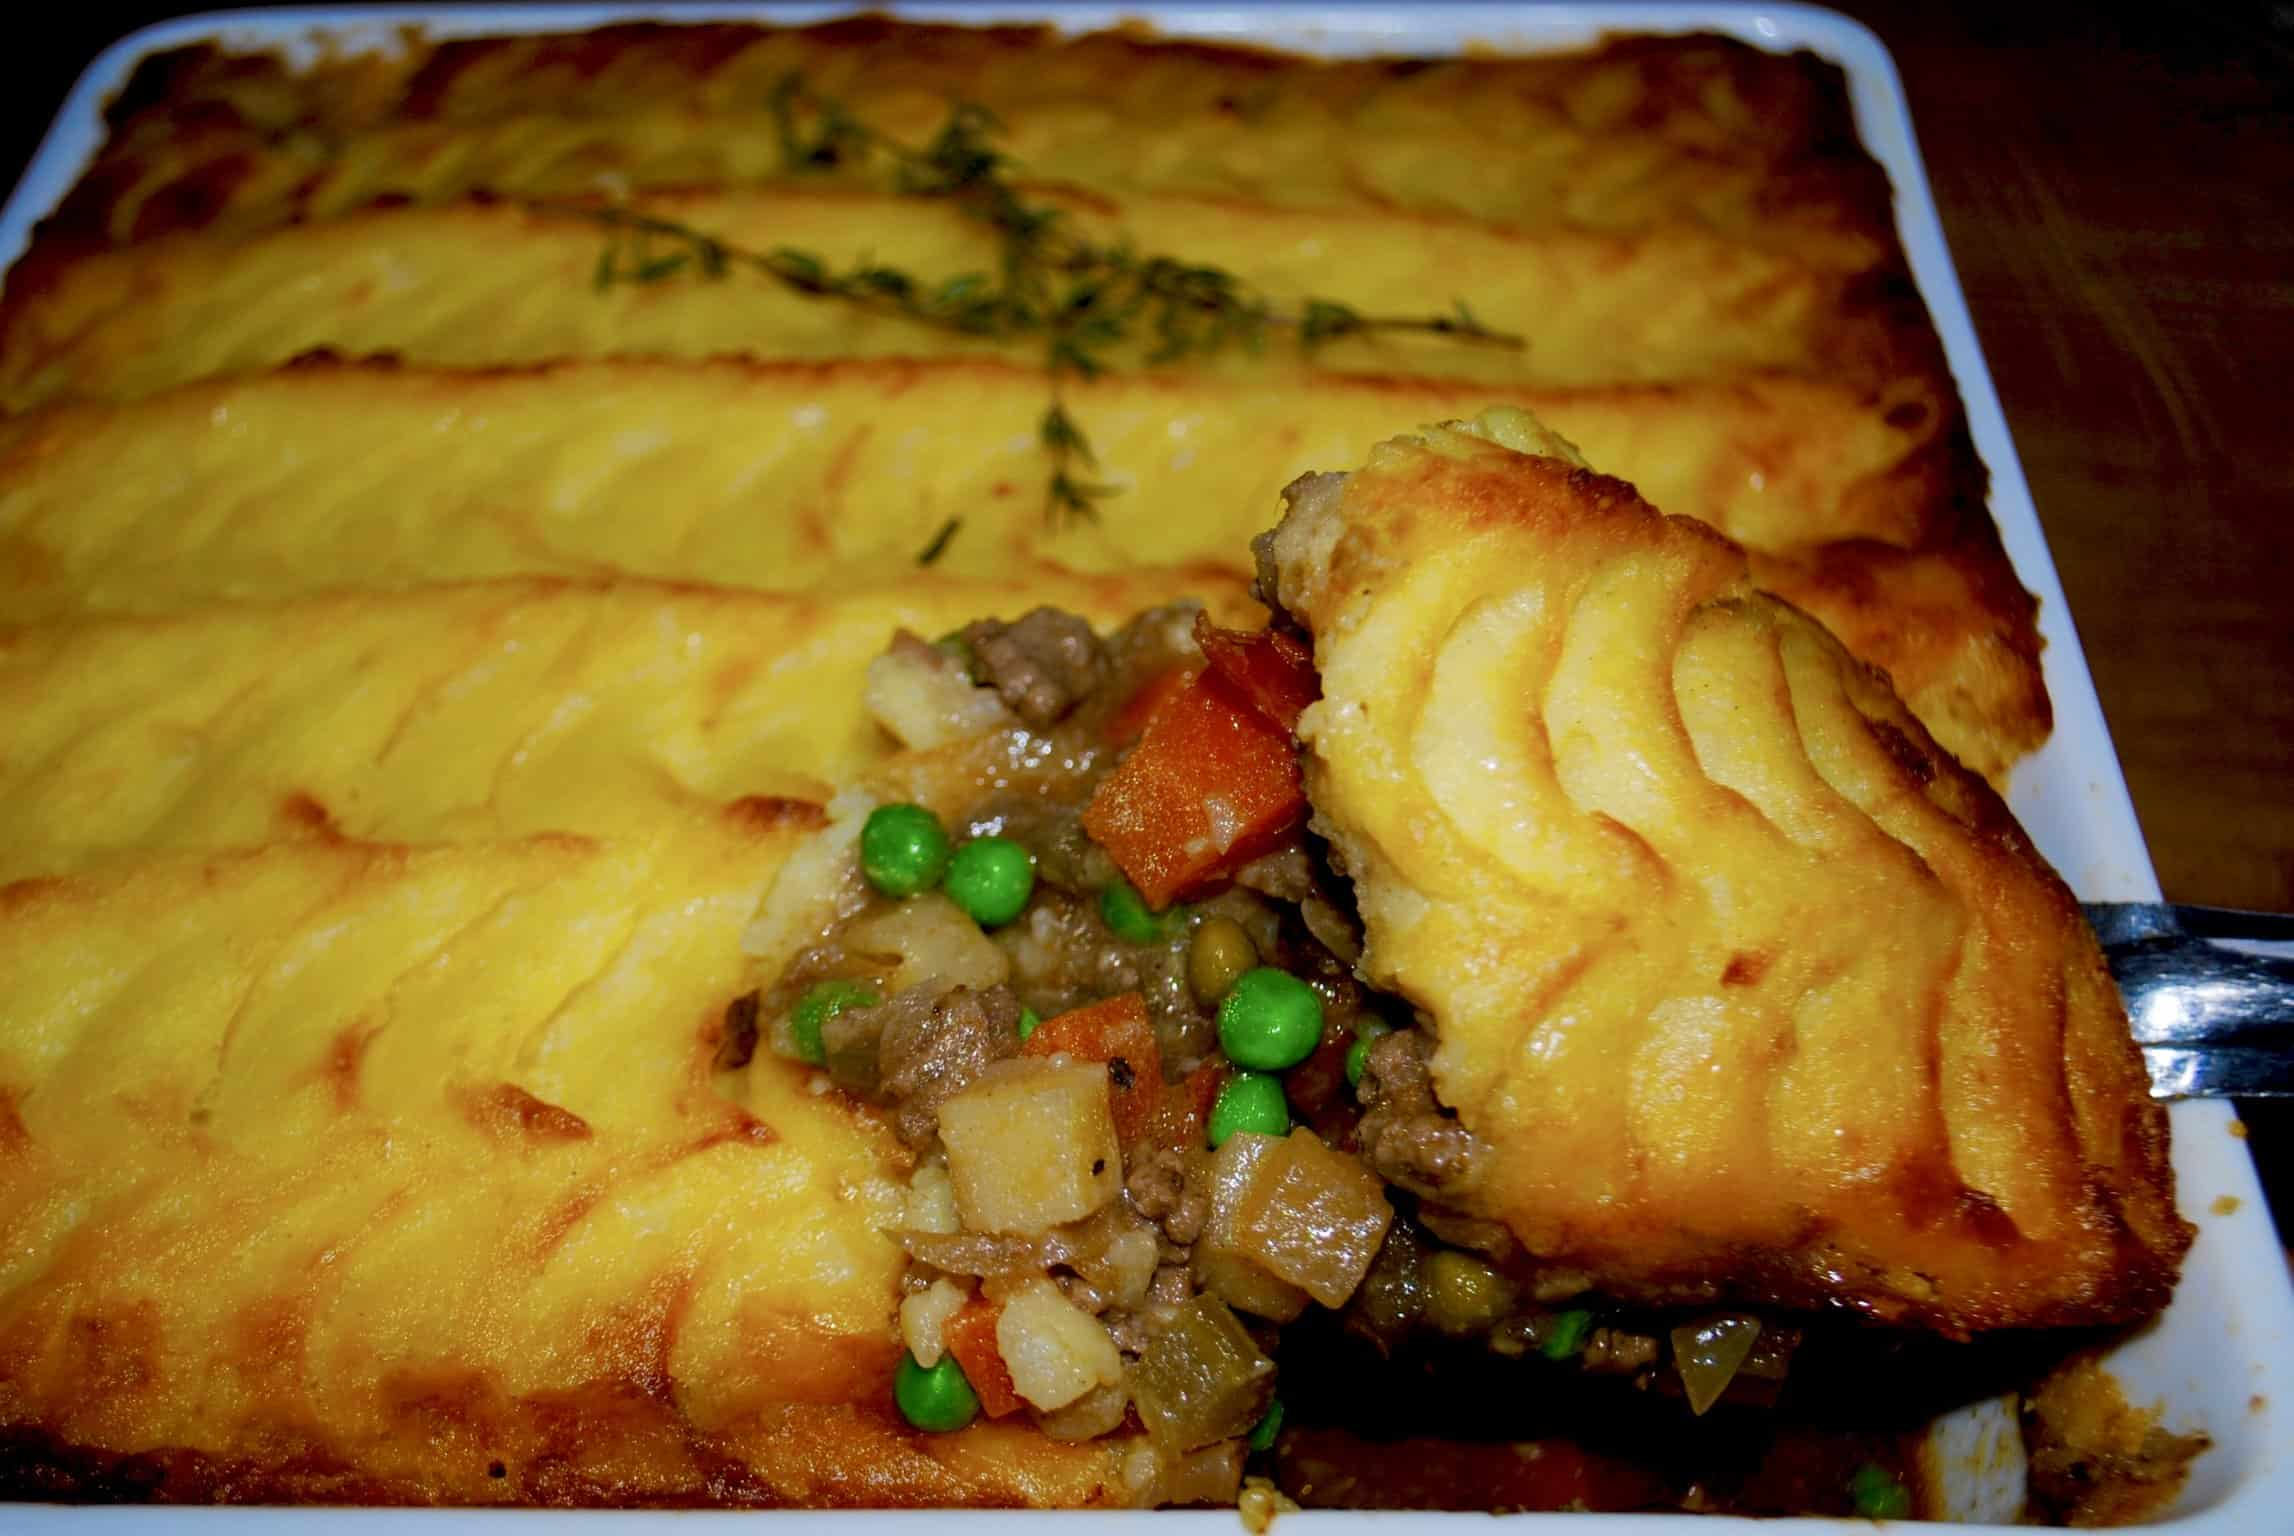 cooked shepherds pie all golden and delicious